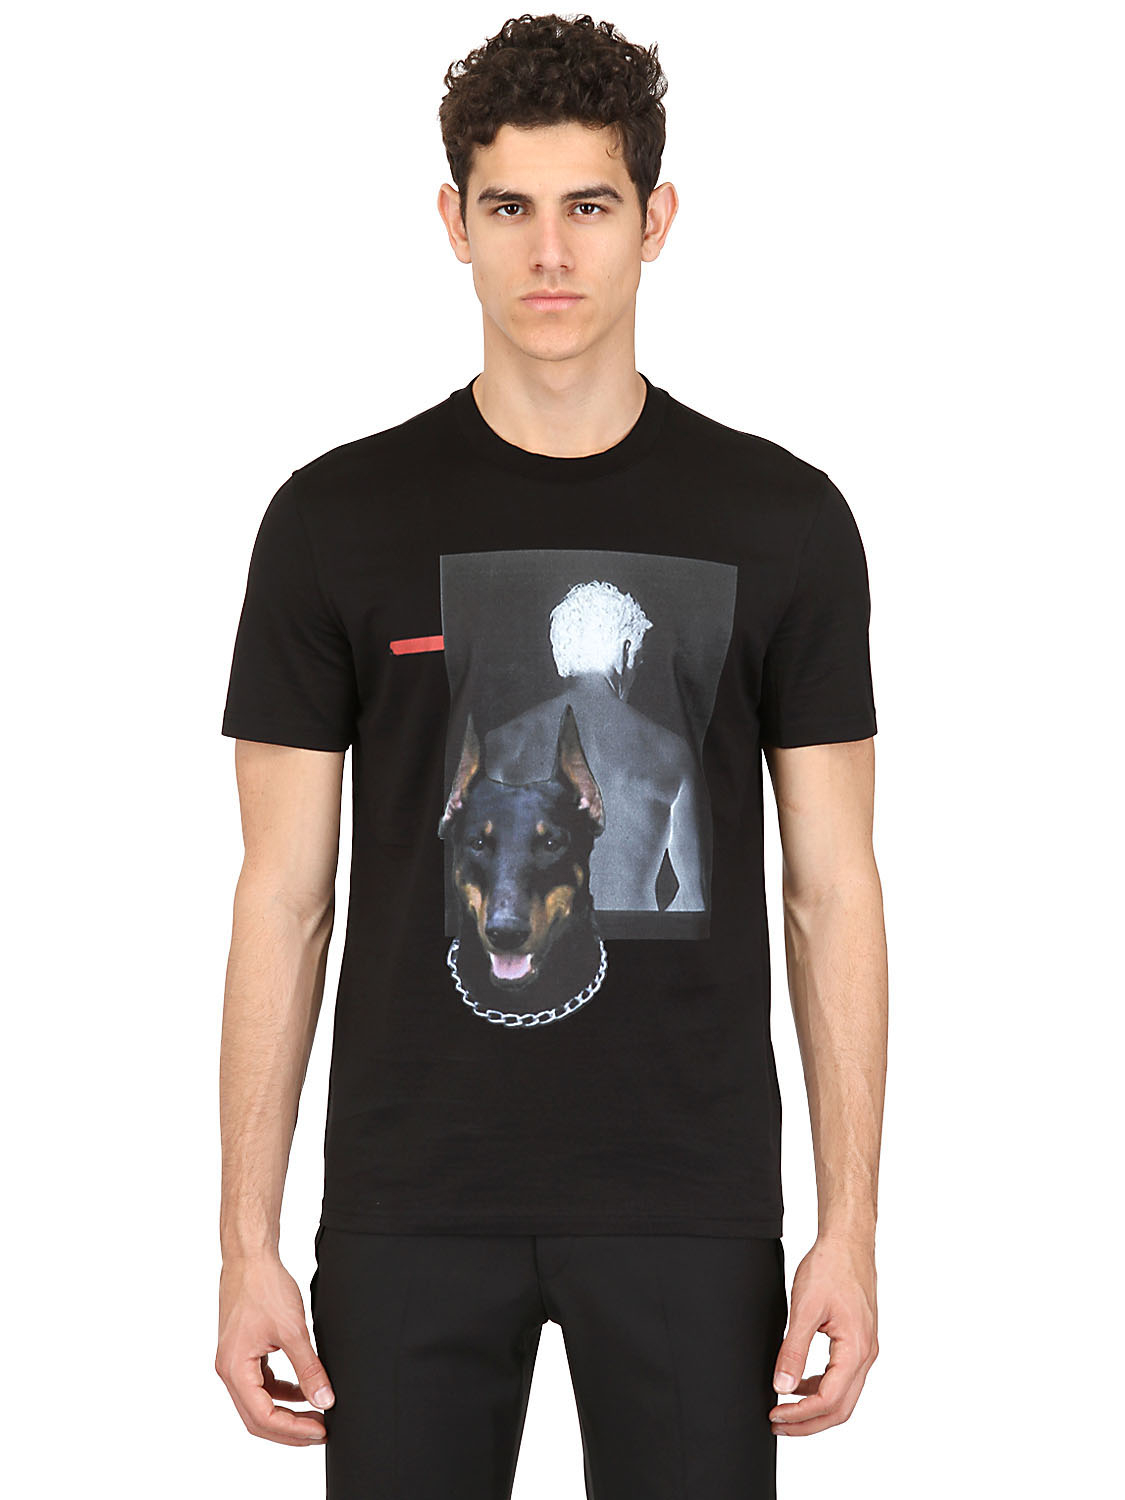 Givenchy doberman cuban fit cotton jersey t shirt in black for Givenchy t shirt man